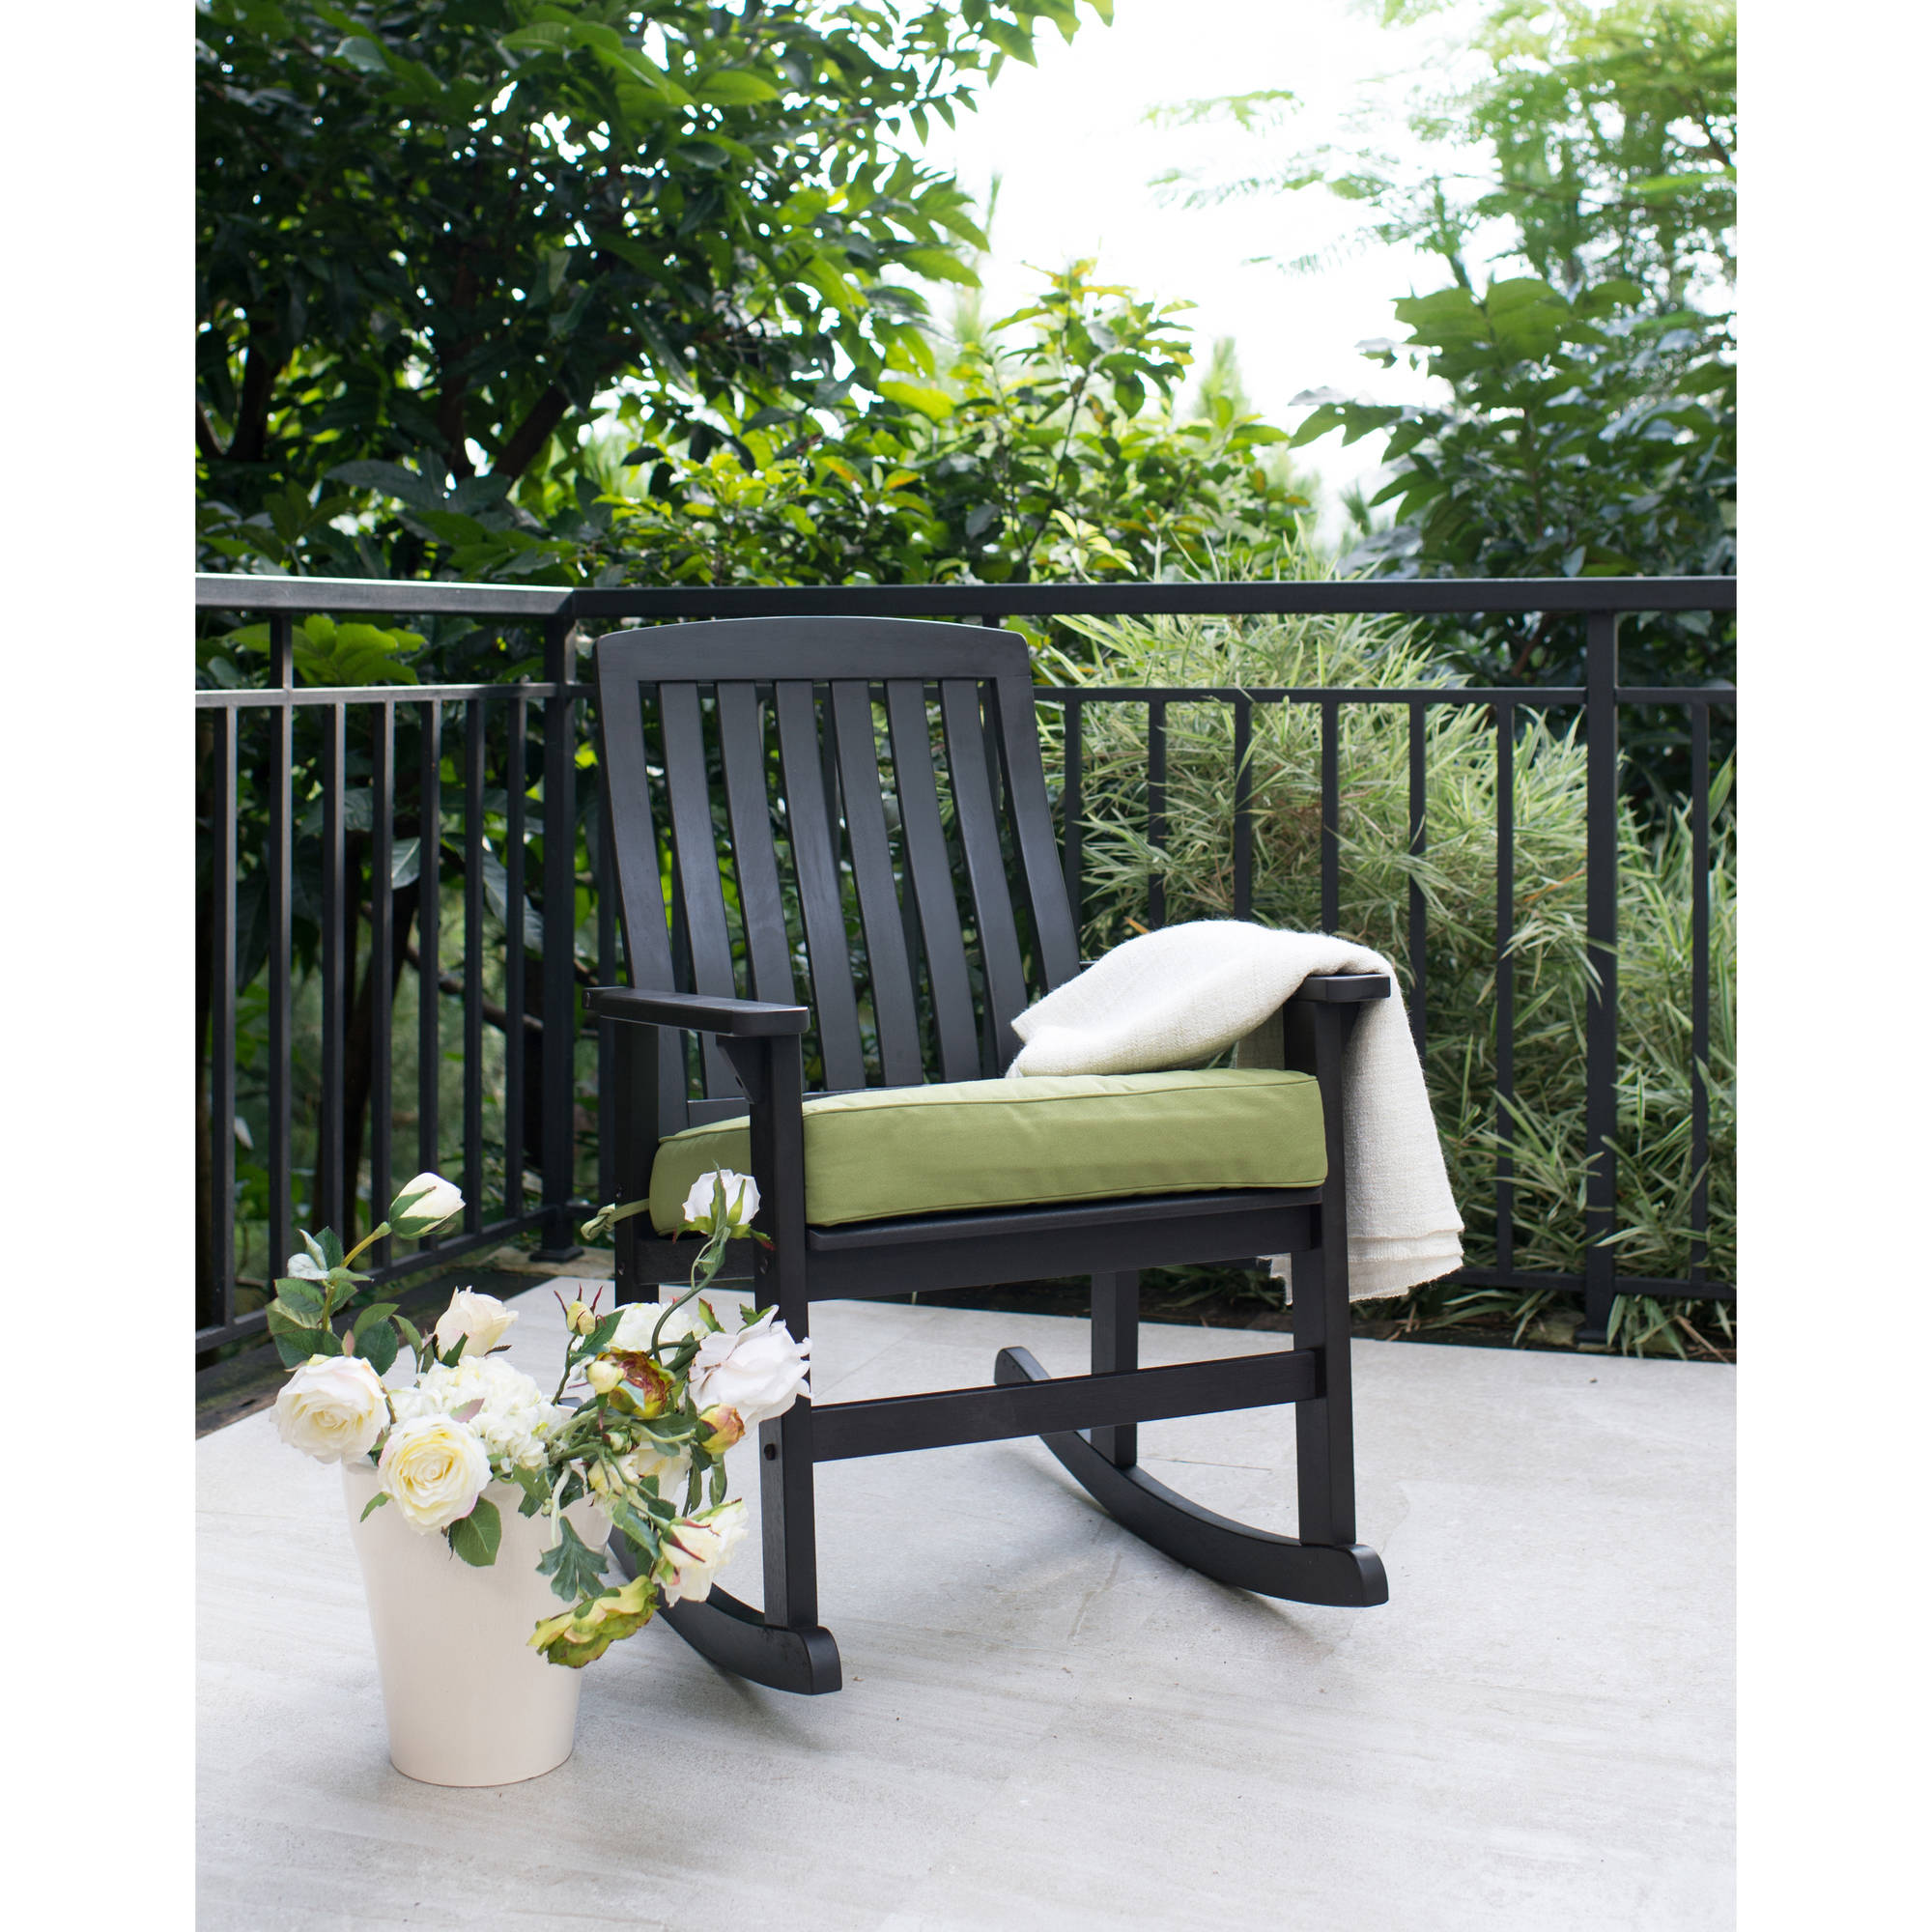 Patio Furniture   Walmart com. Outdoor Lounge Chairs Walmart. Home Design Ideas